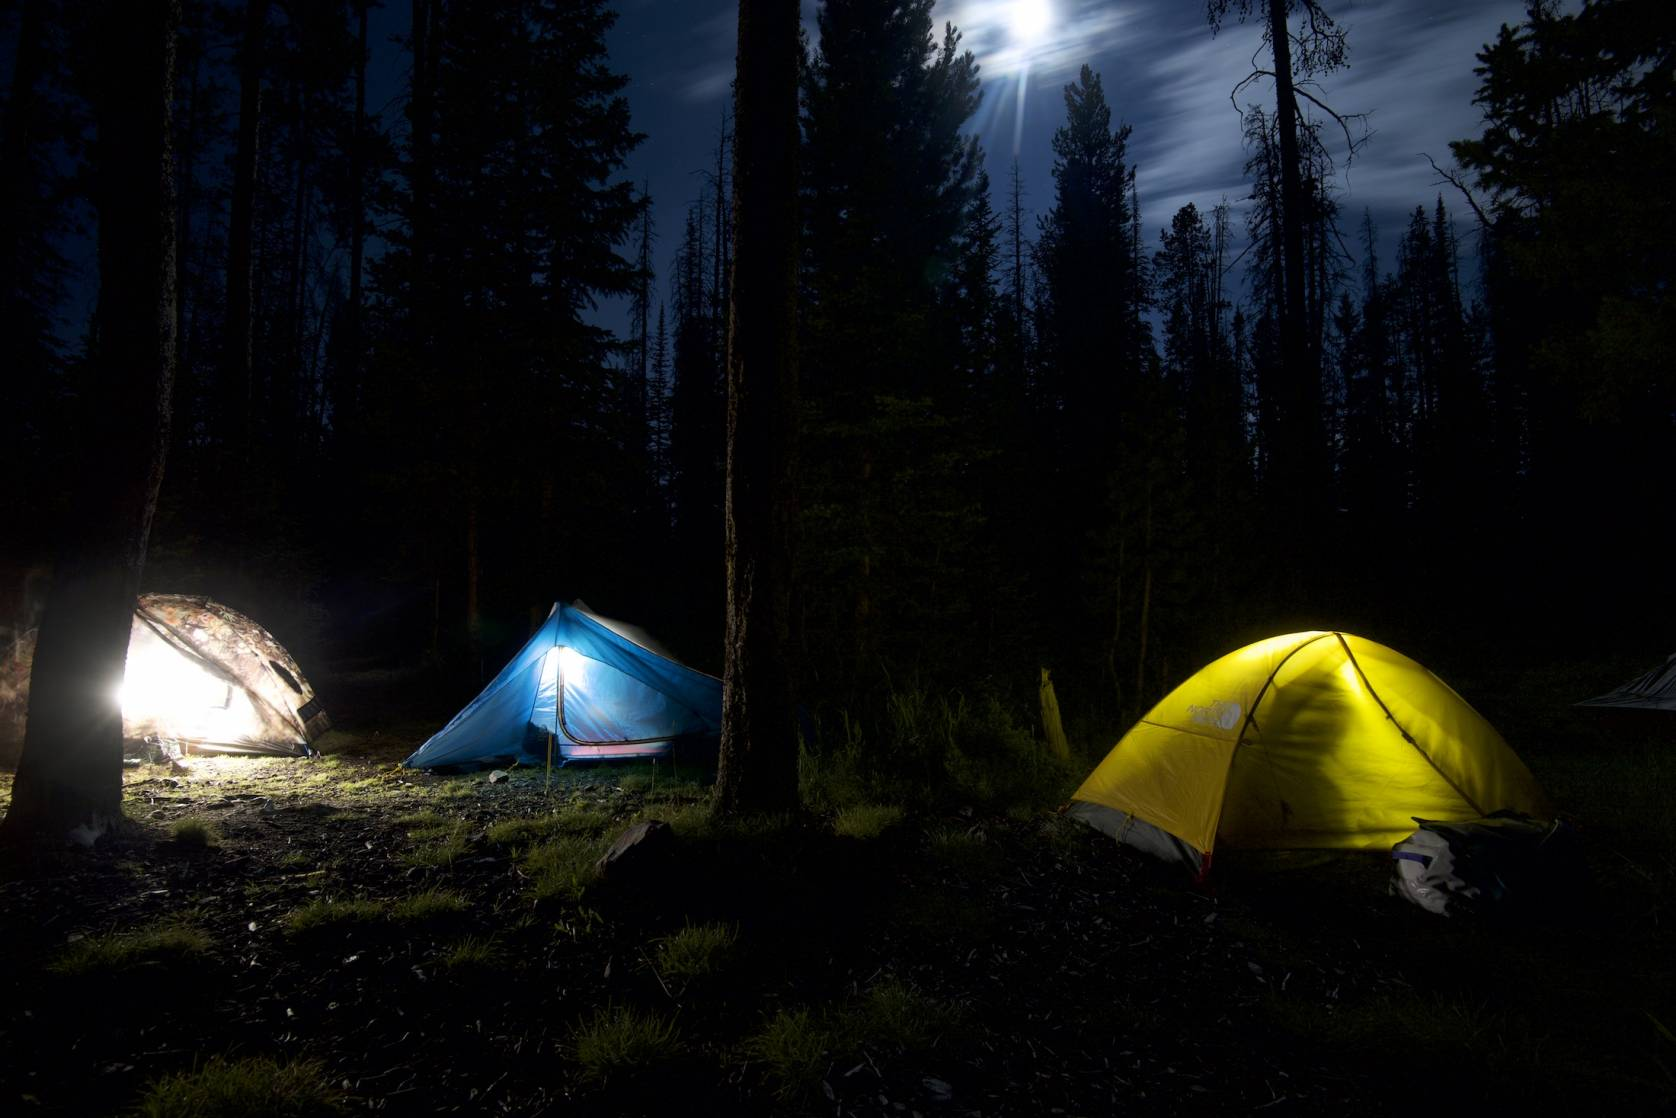 Backcountry tents at night